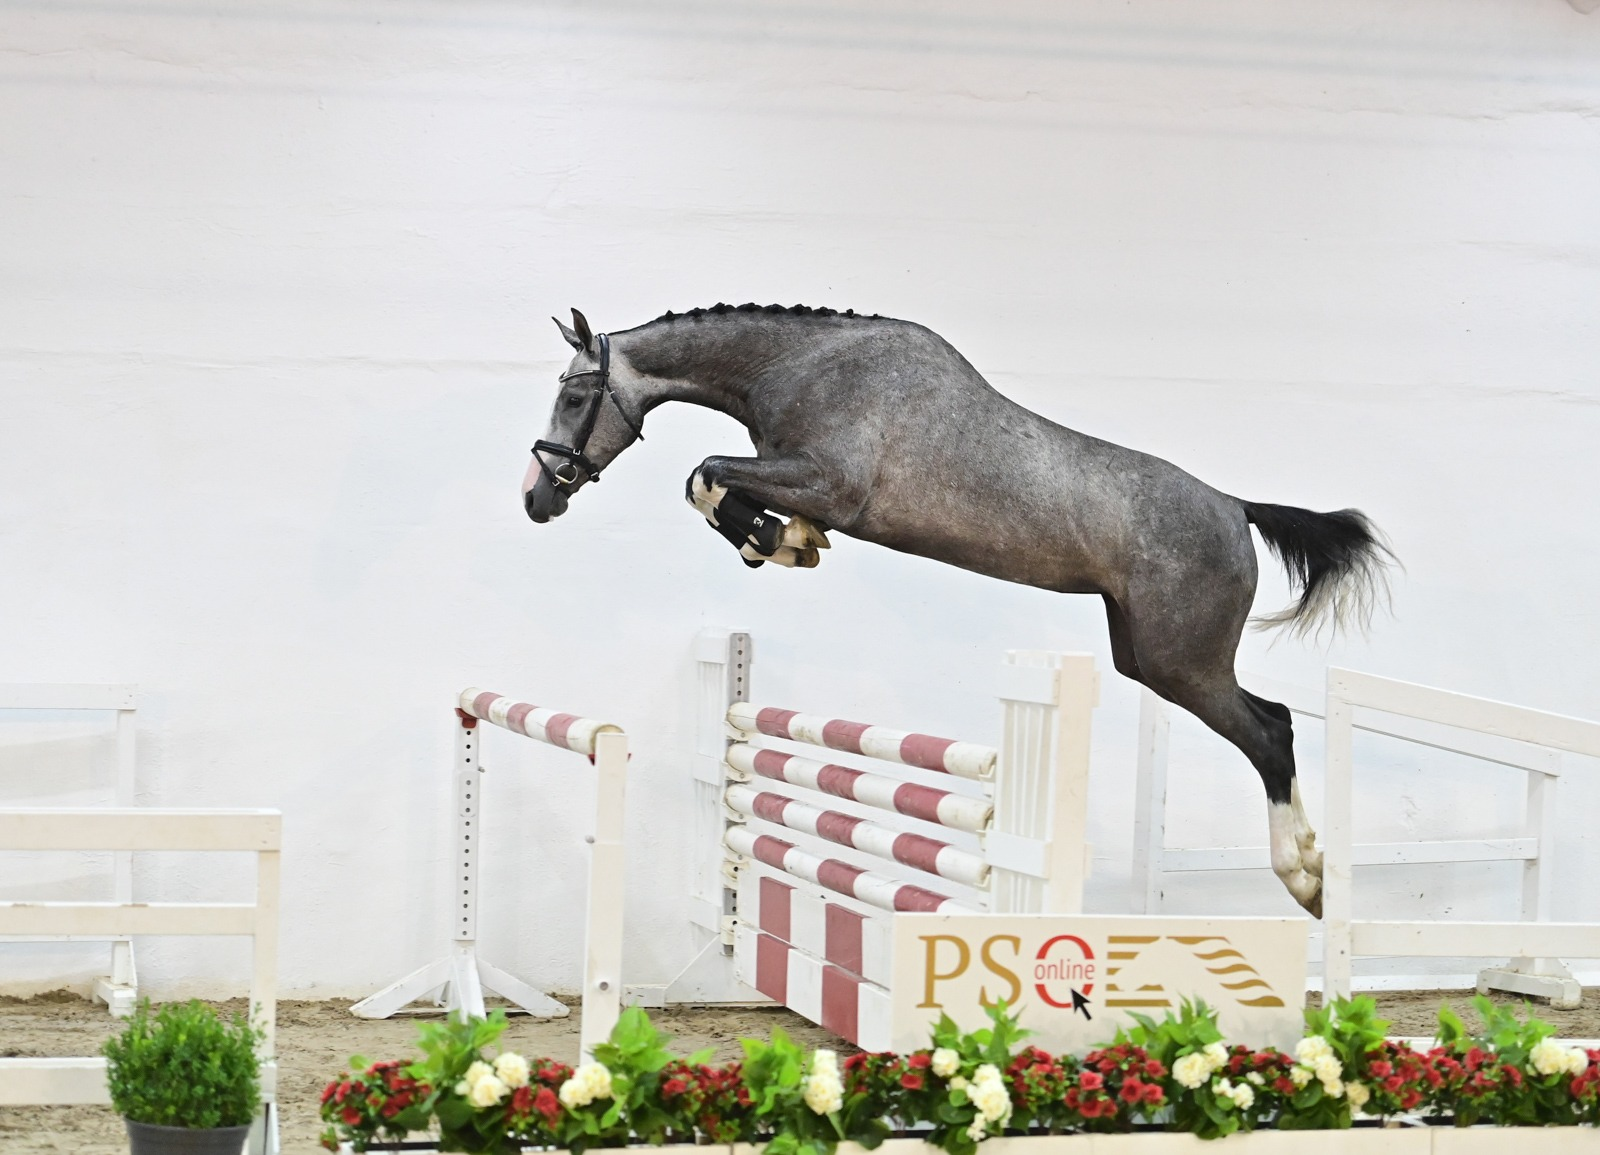 Belgian buyers go wild on PS Online Auction. 125.000 euro for 4-year-old mare Coralie PS